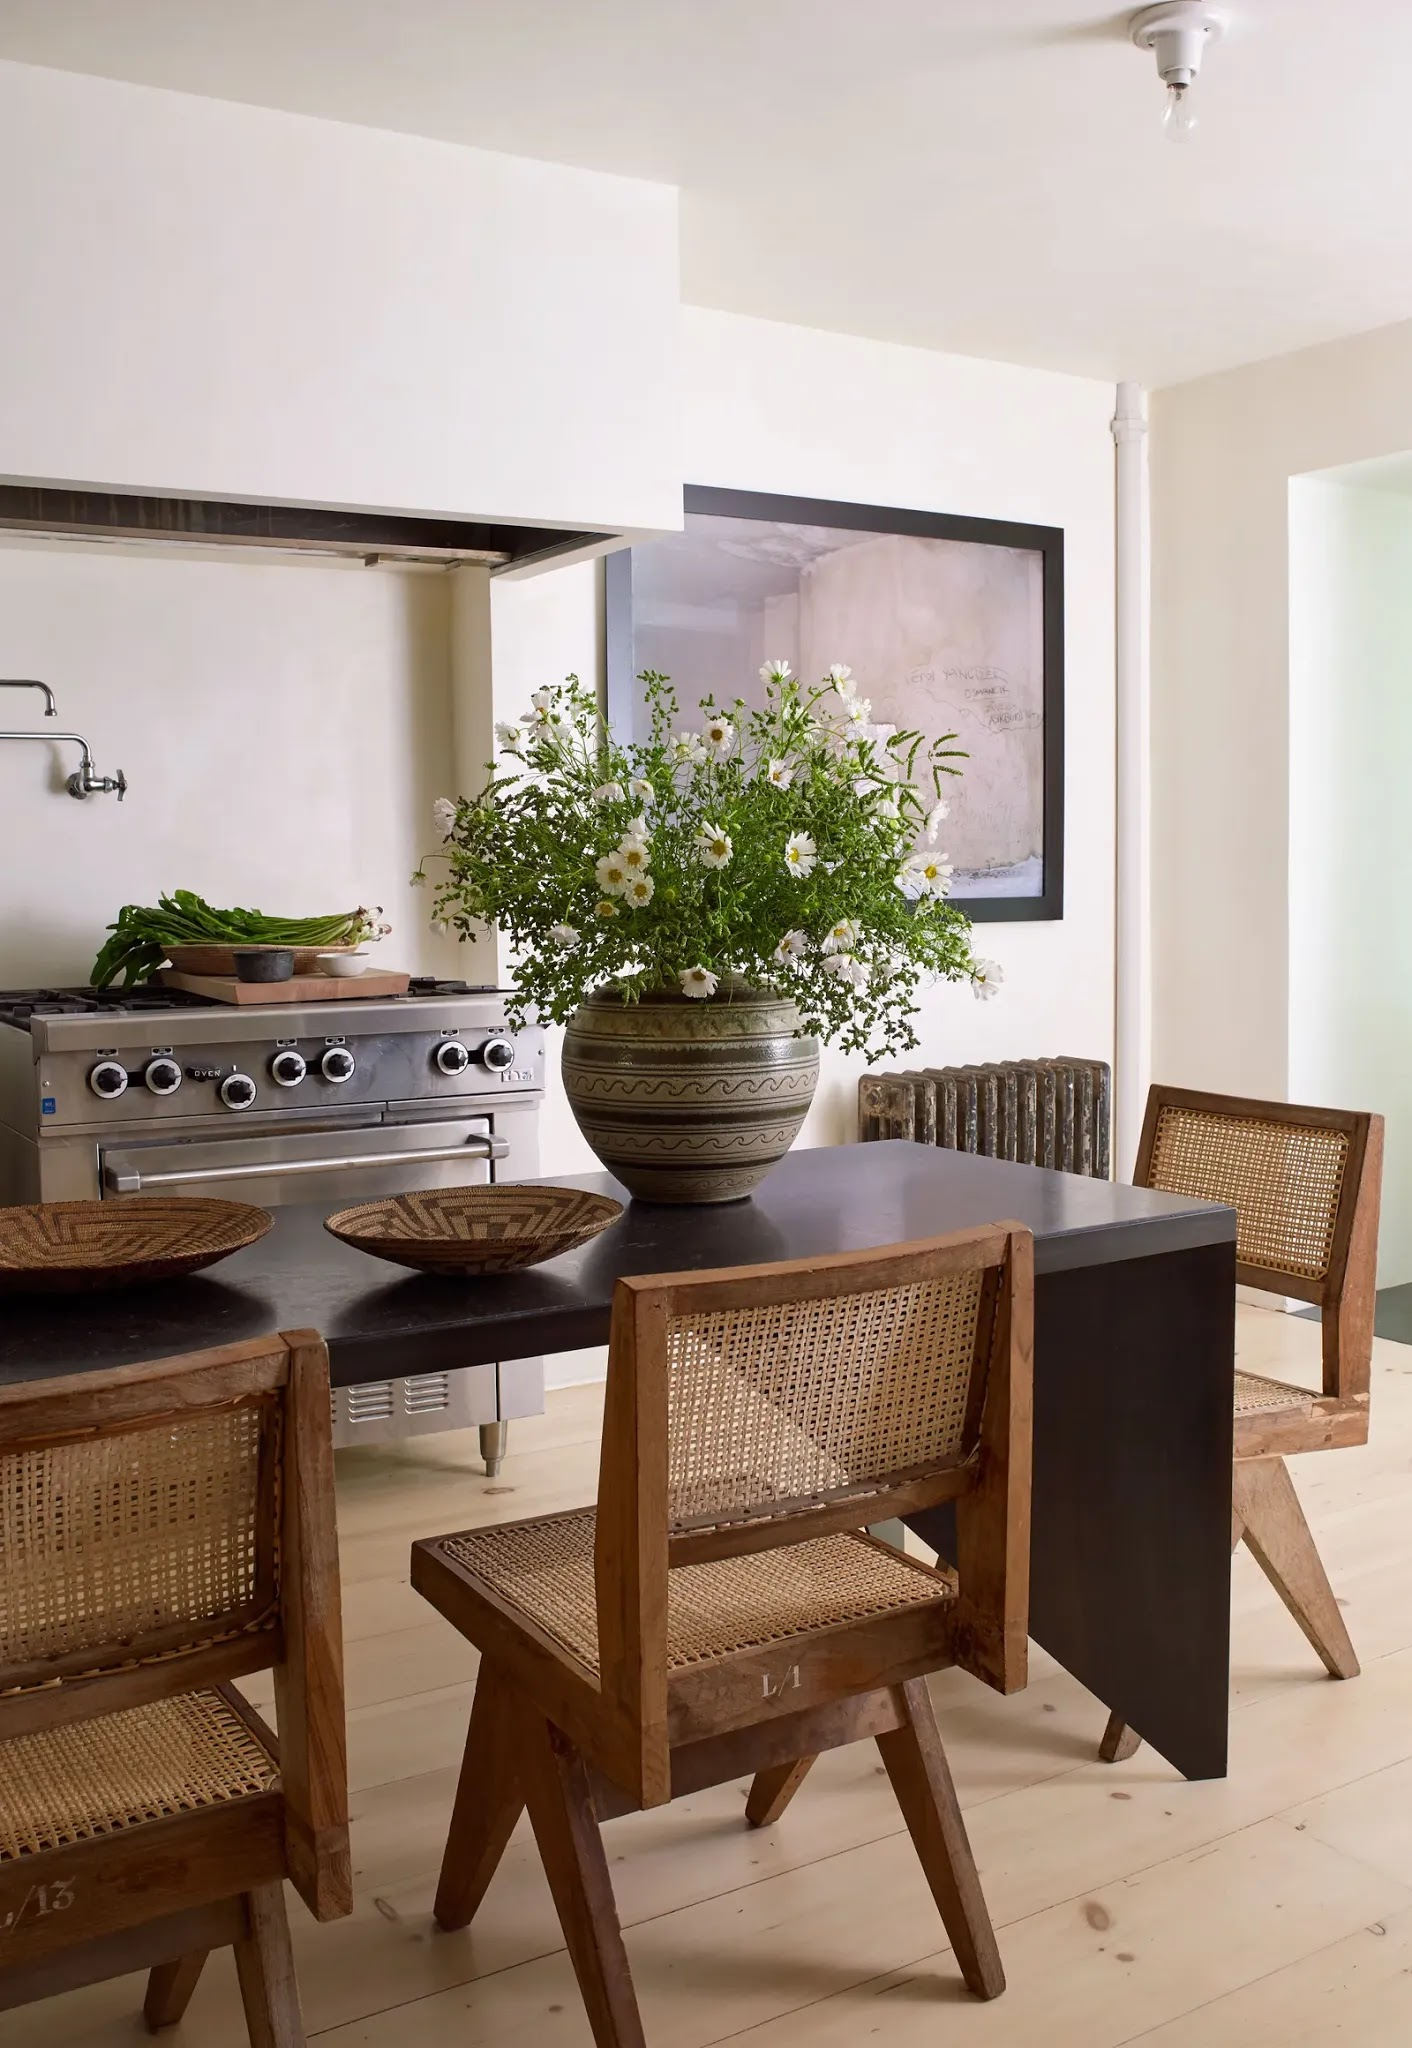 Trend Alert: Kitchen Table Replacing the Kitchen Island